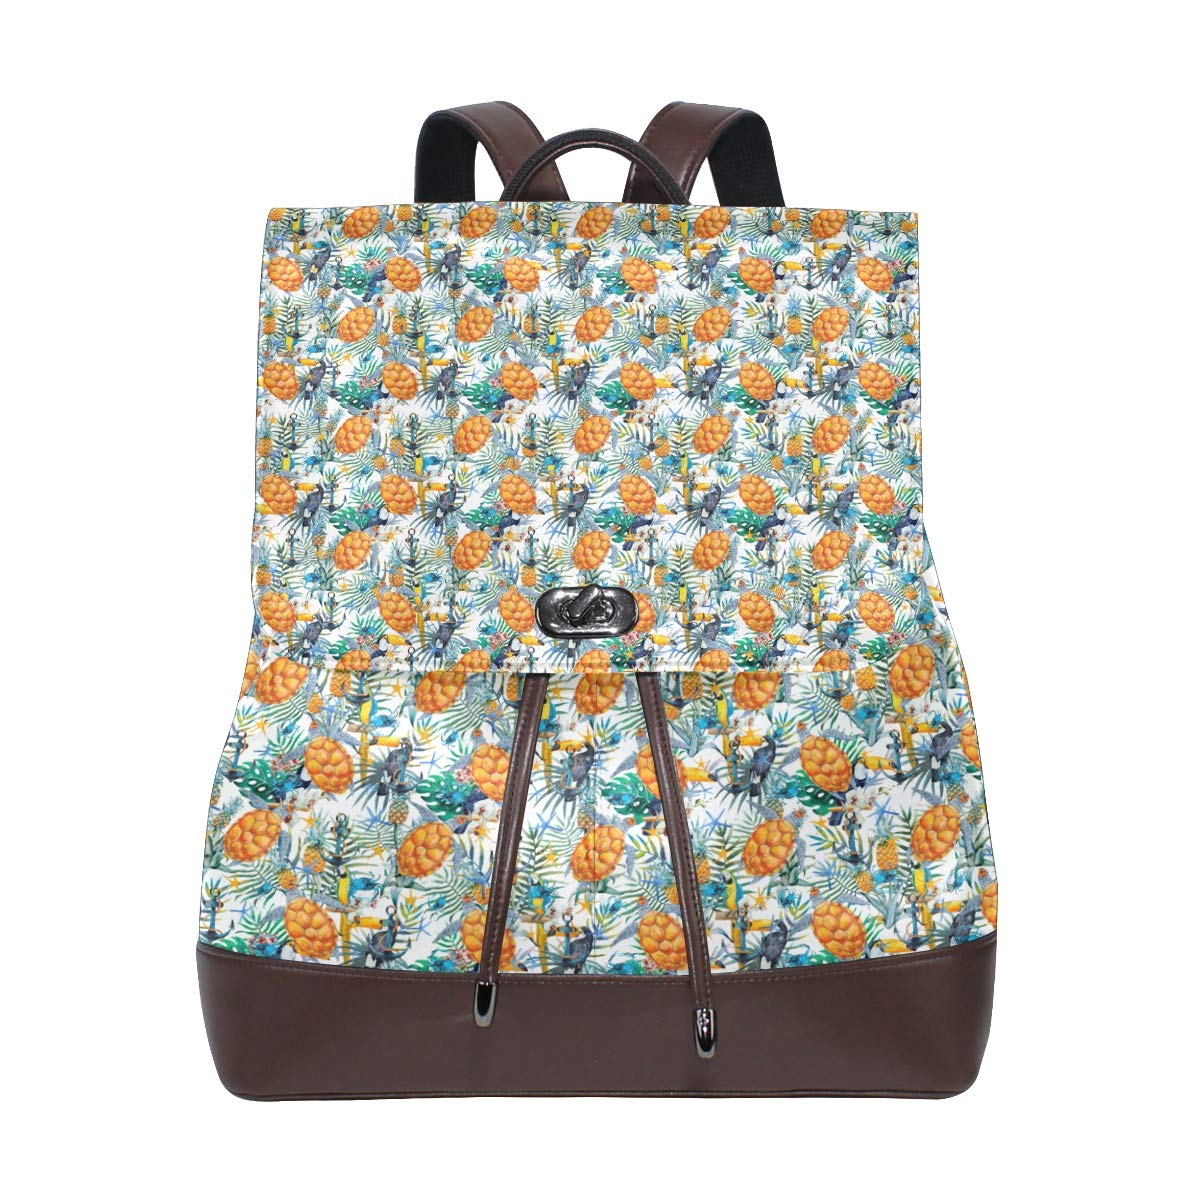 Unisex PU Leather Backpack Tropical Sunflower Print Womens Casual Daypack Mens Travel Sports Bag Boys College Bookbag